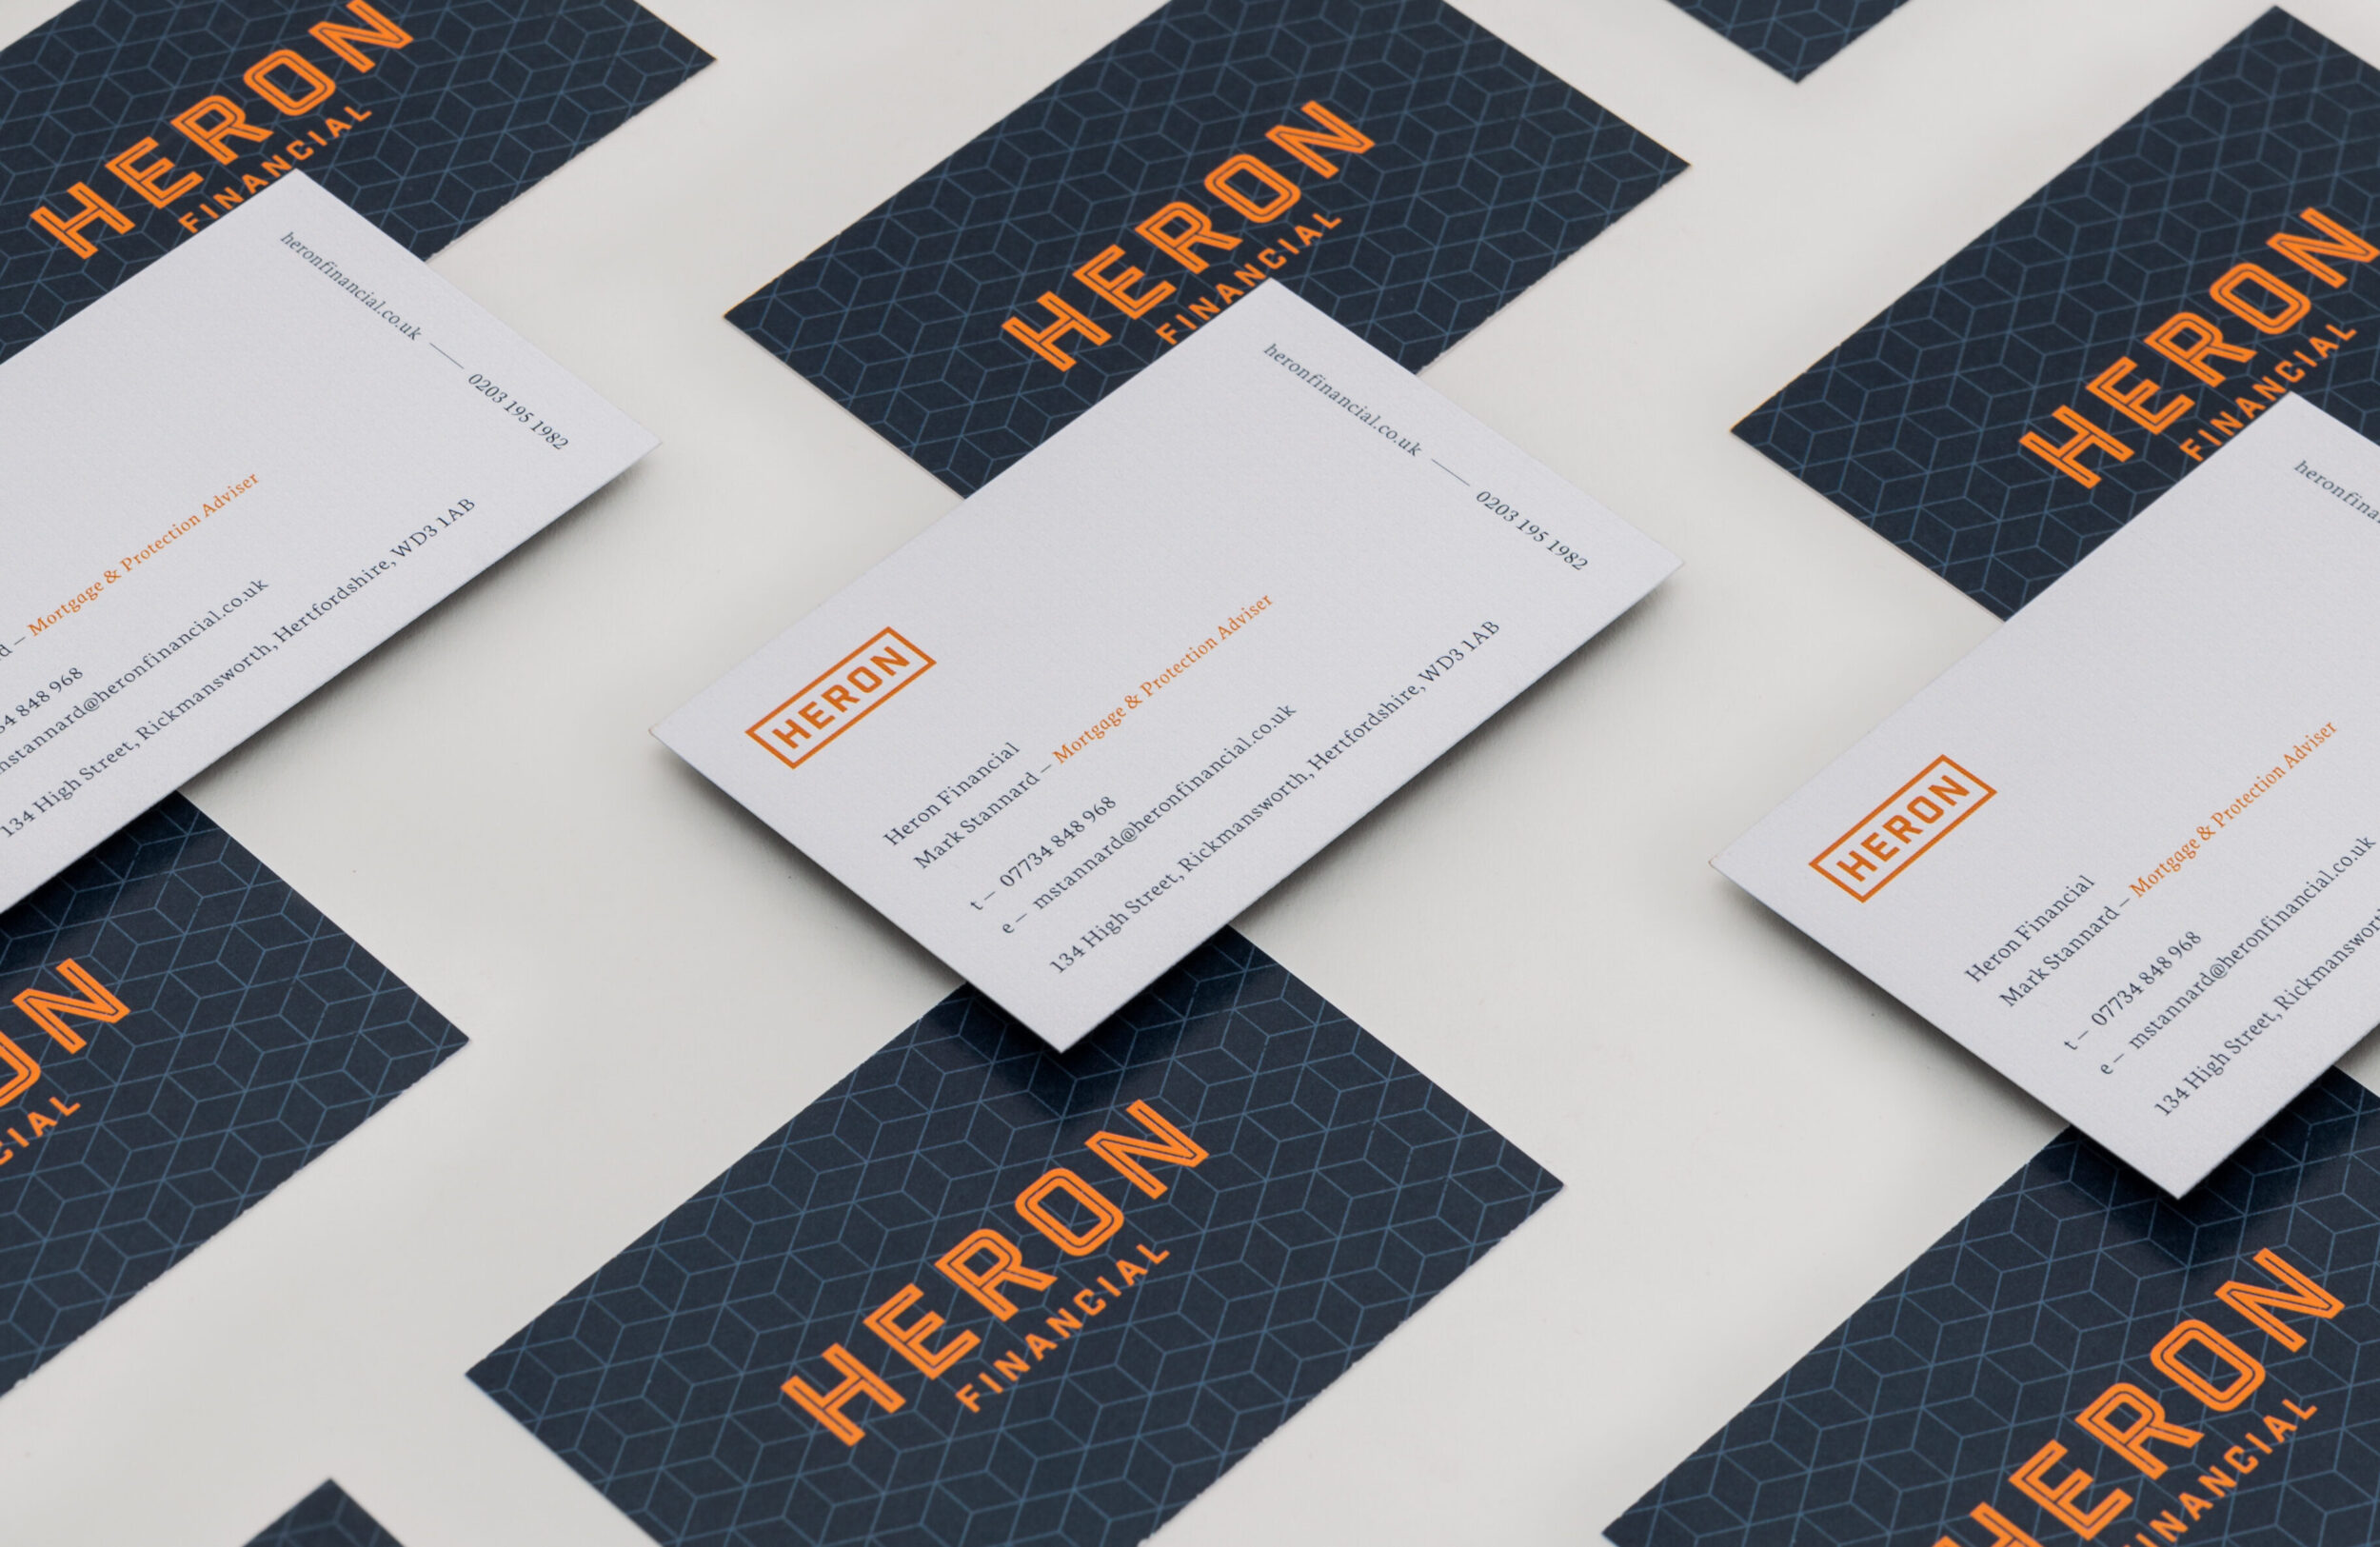 Heron Financial, mortgage brokers London, business cards. Graphic design by Barefaced Studios, design agency Islington.